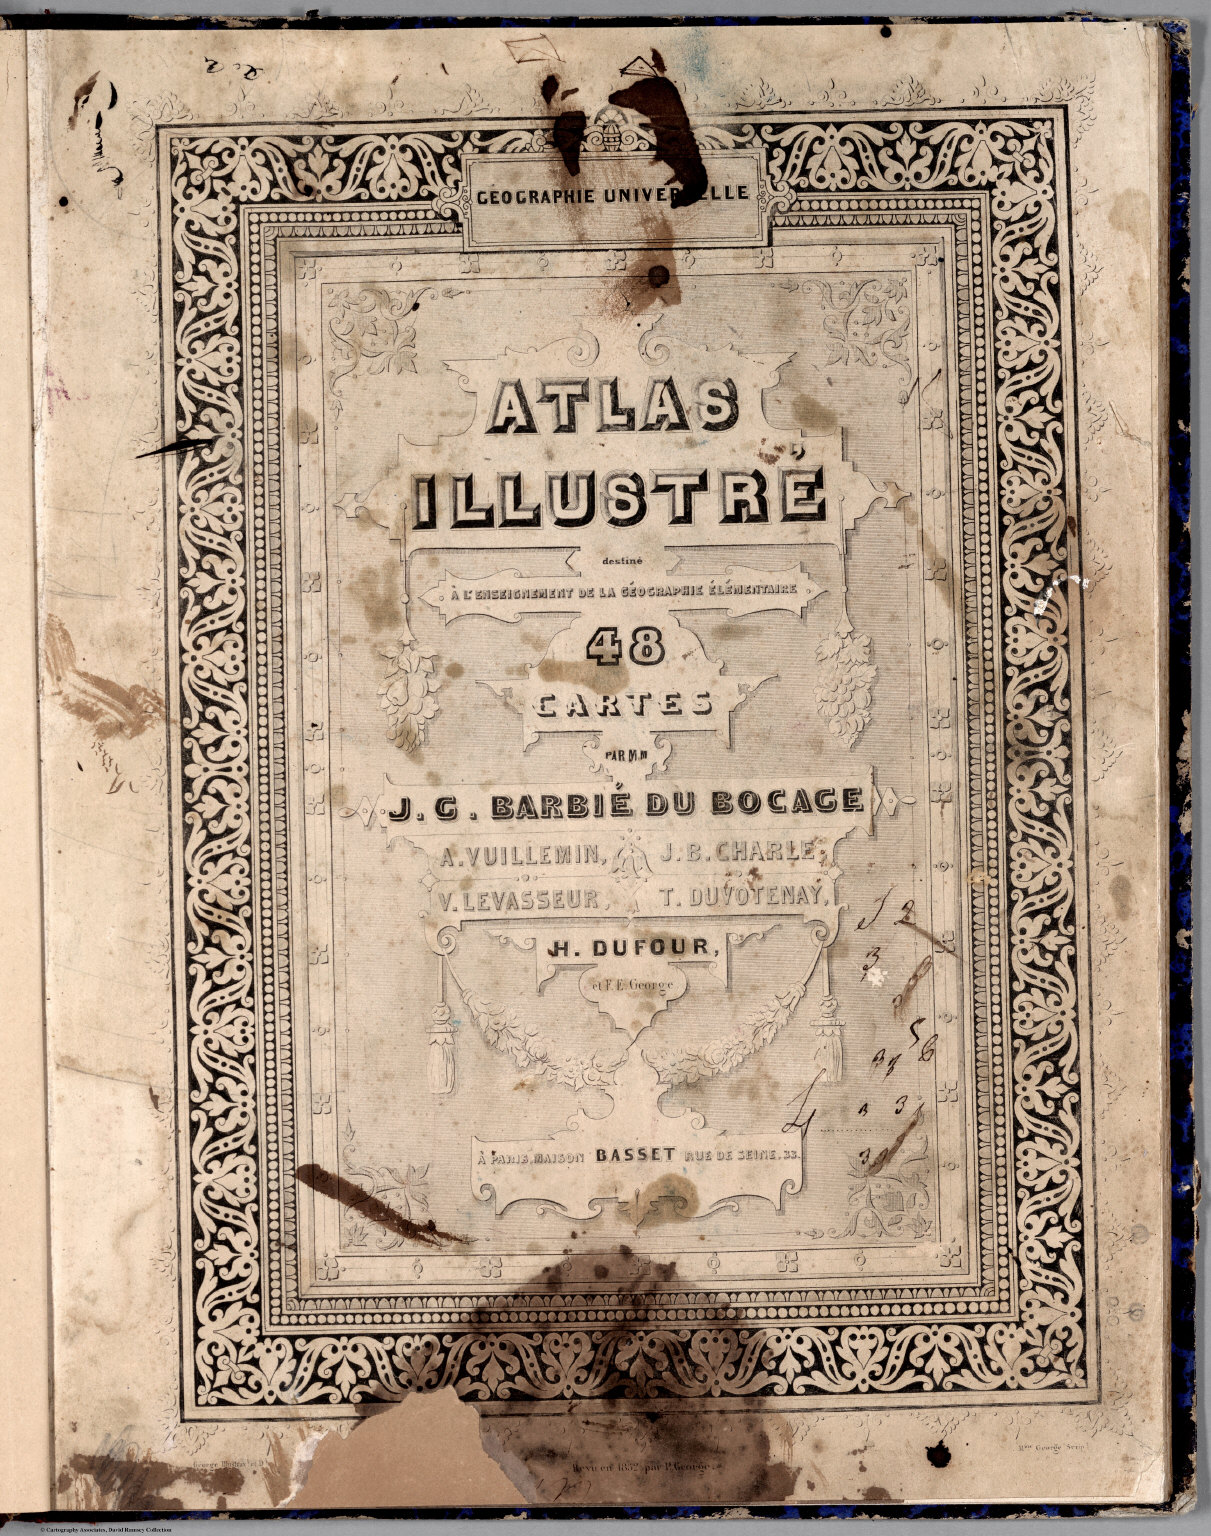 Title Page: Geographie Universelle Atlas.